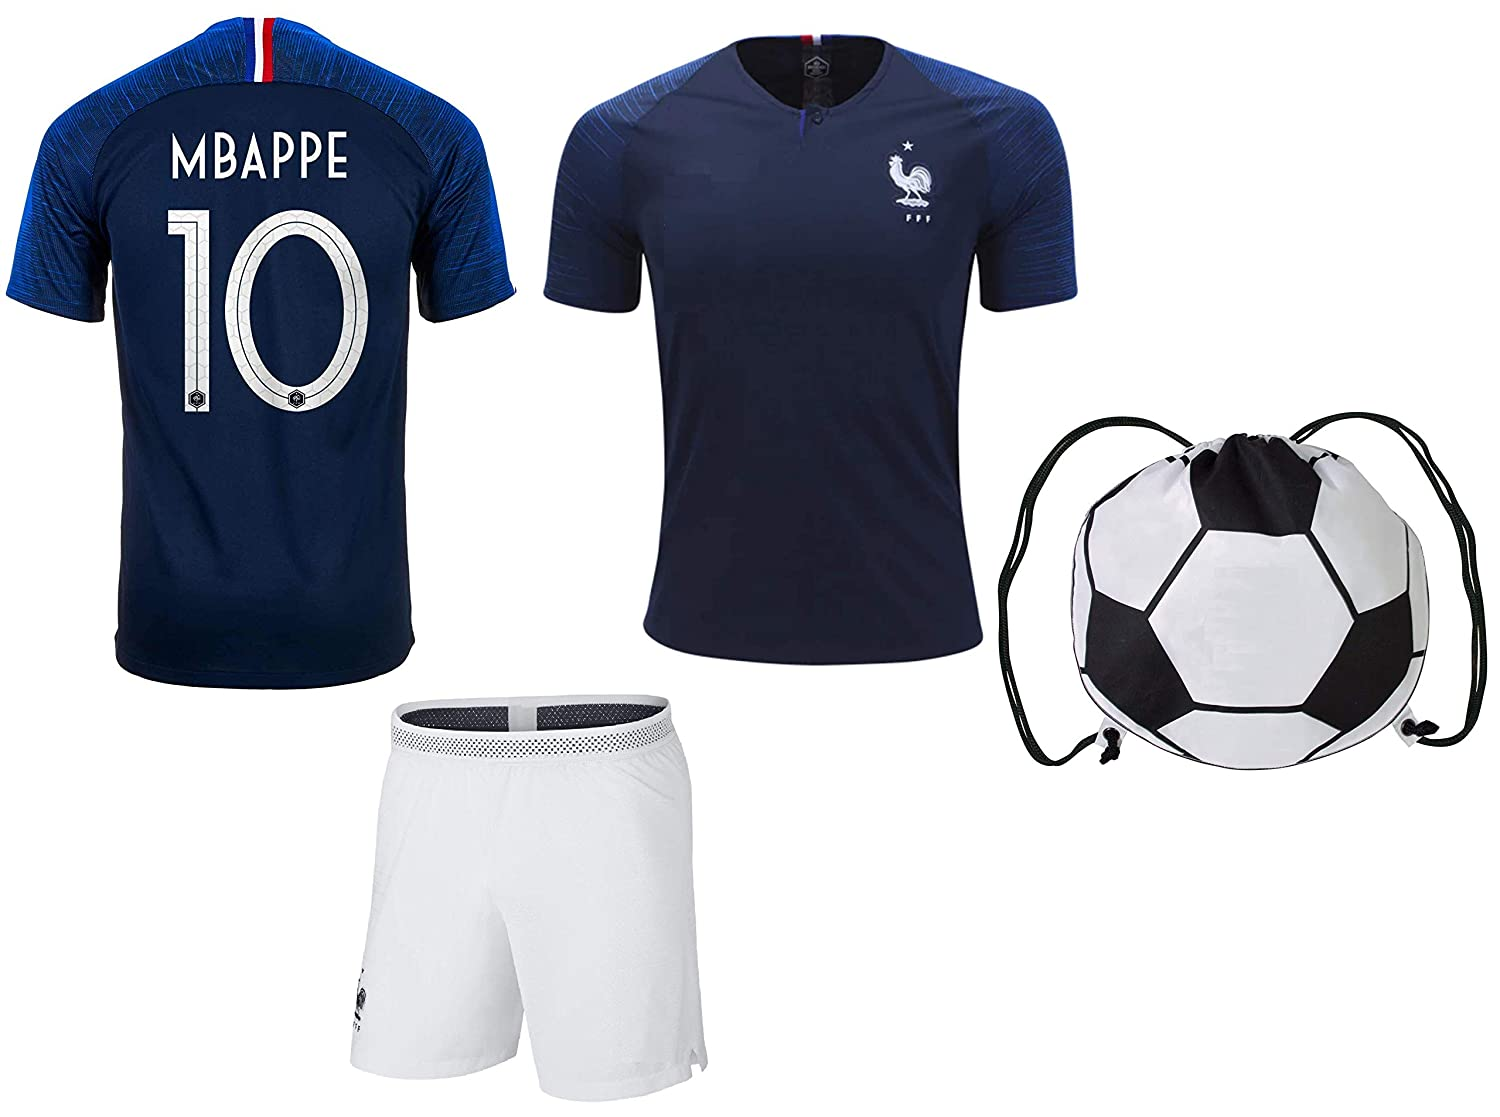 premium selection 360af fe9c3 Mbappe France #10 Youth Soccer Jersey Home Short Sleeve Kit Shorts Kids  Gift Set